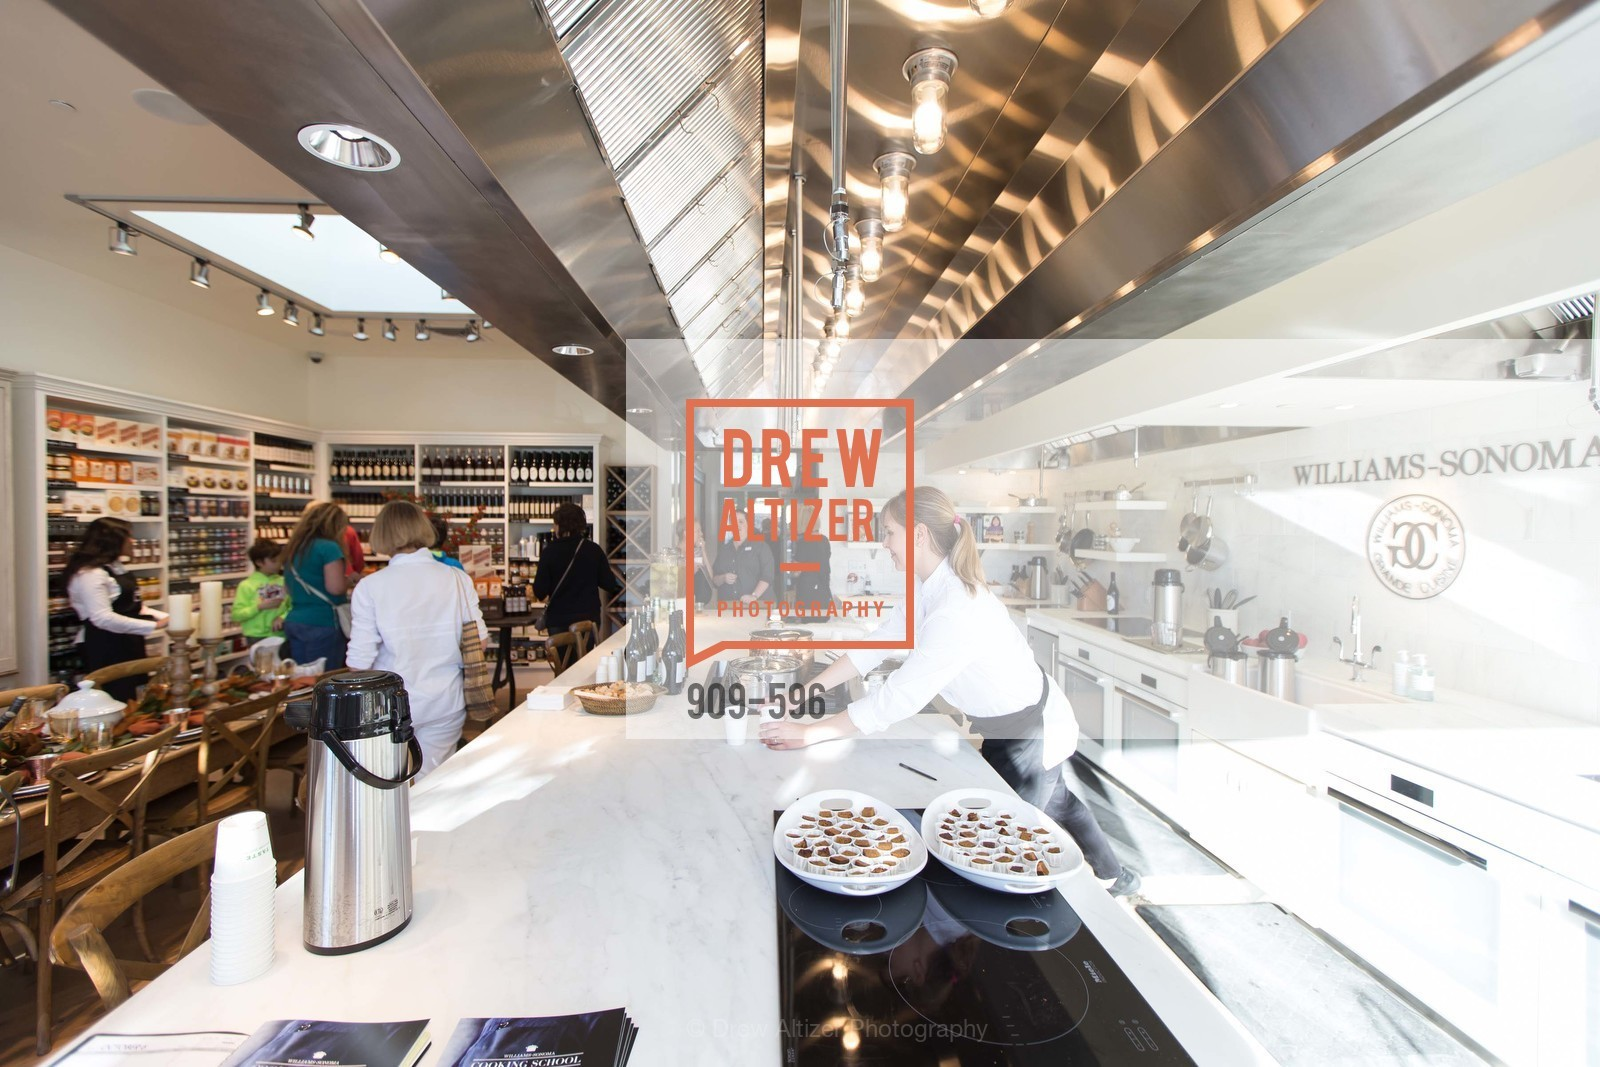 Atmosphere, WILLIAMS-SONOMA Grand Re-Opening Breakfast, October 5th, 2014, Photo,Drew Altizer, Drew Altizer Photography, full-service event agency, private events, San Francisco photographer, photographer California